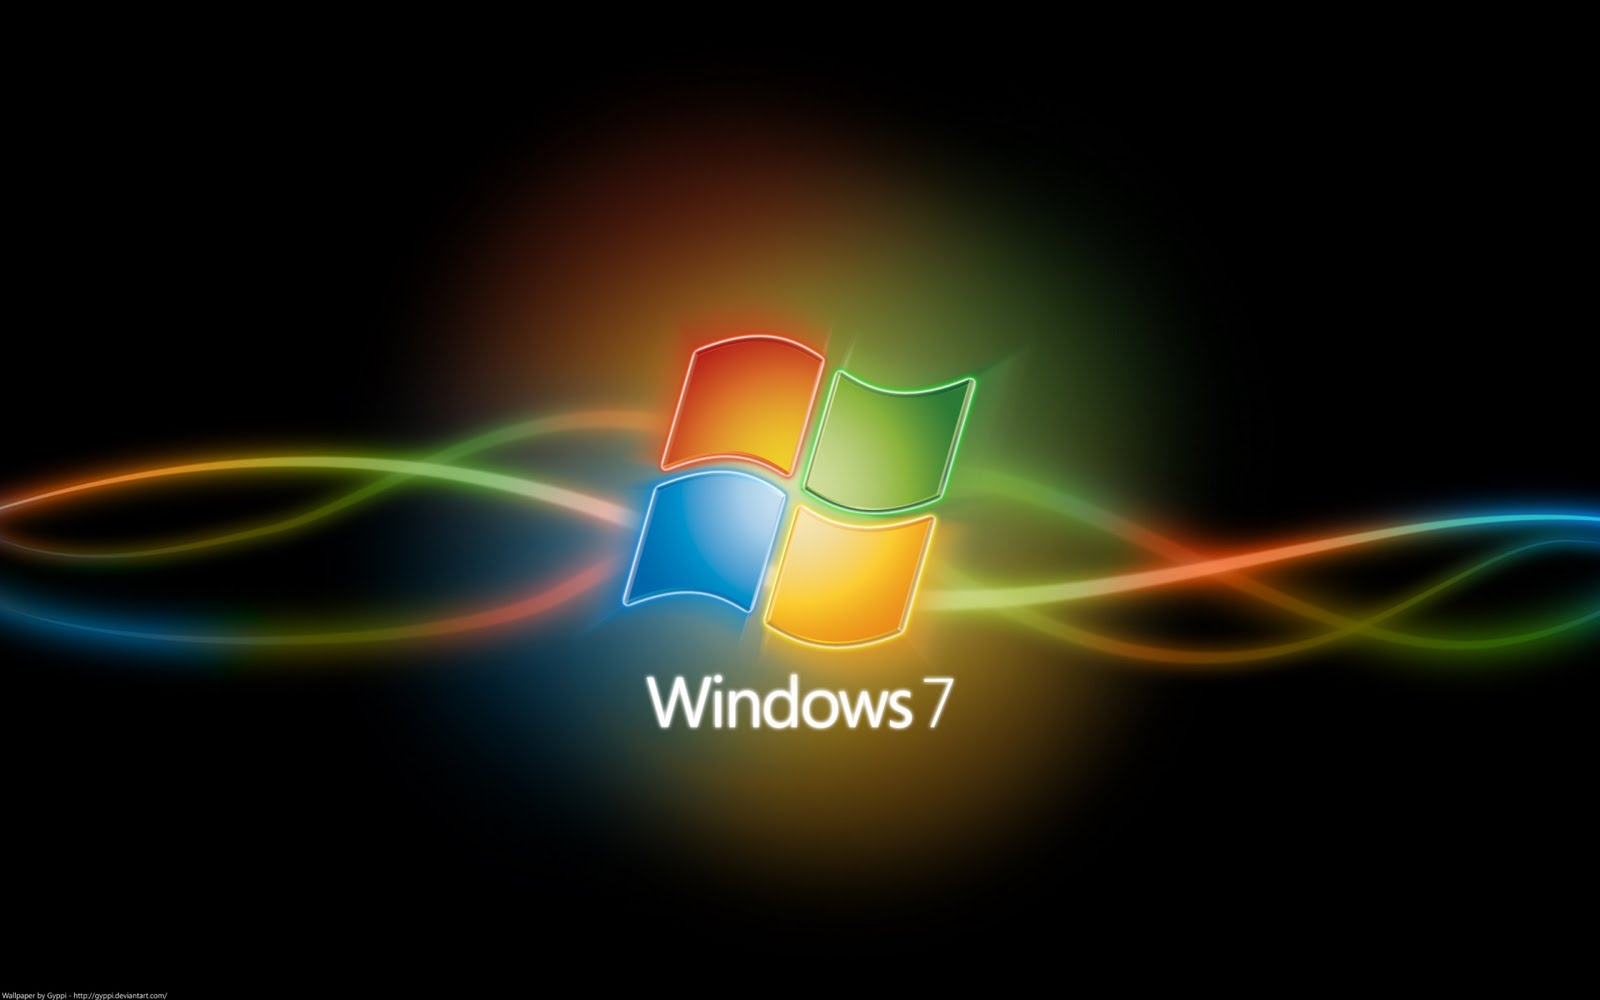 wall paper windows 7 - photo #2